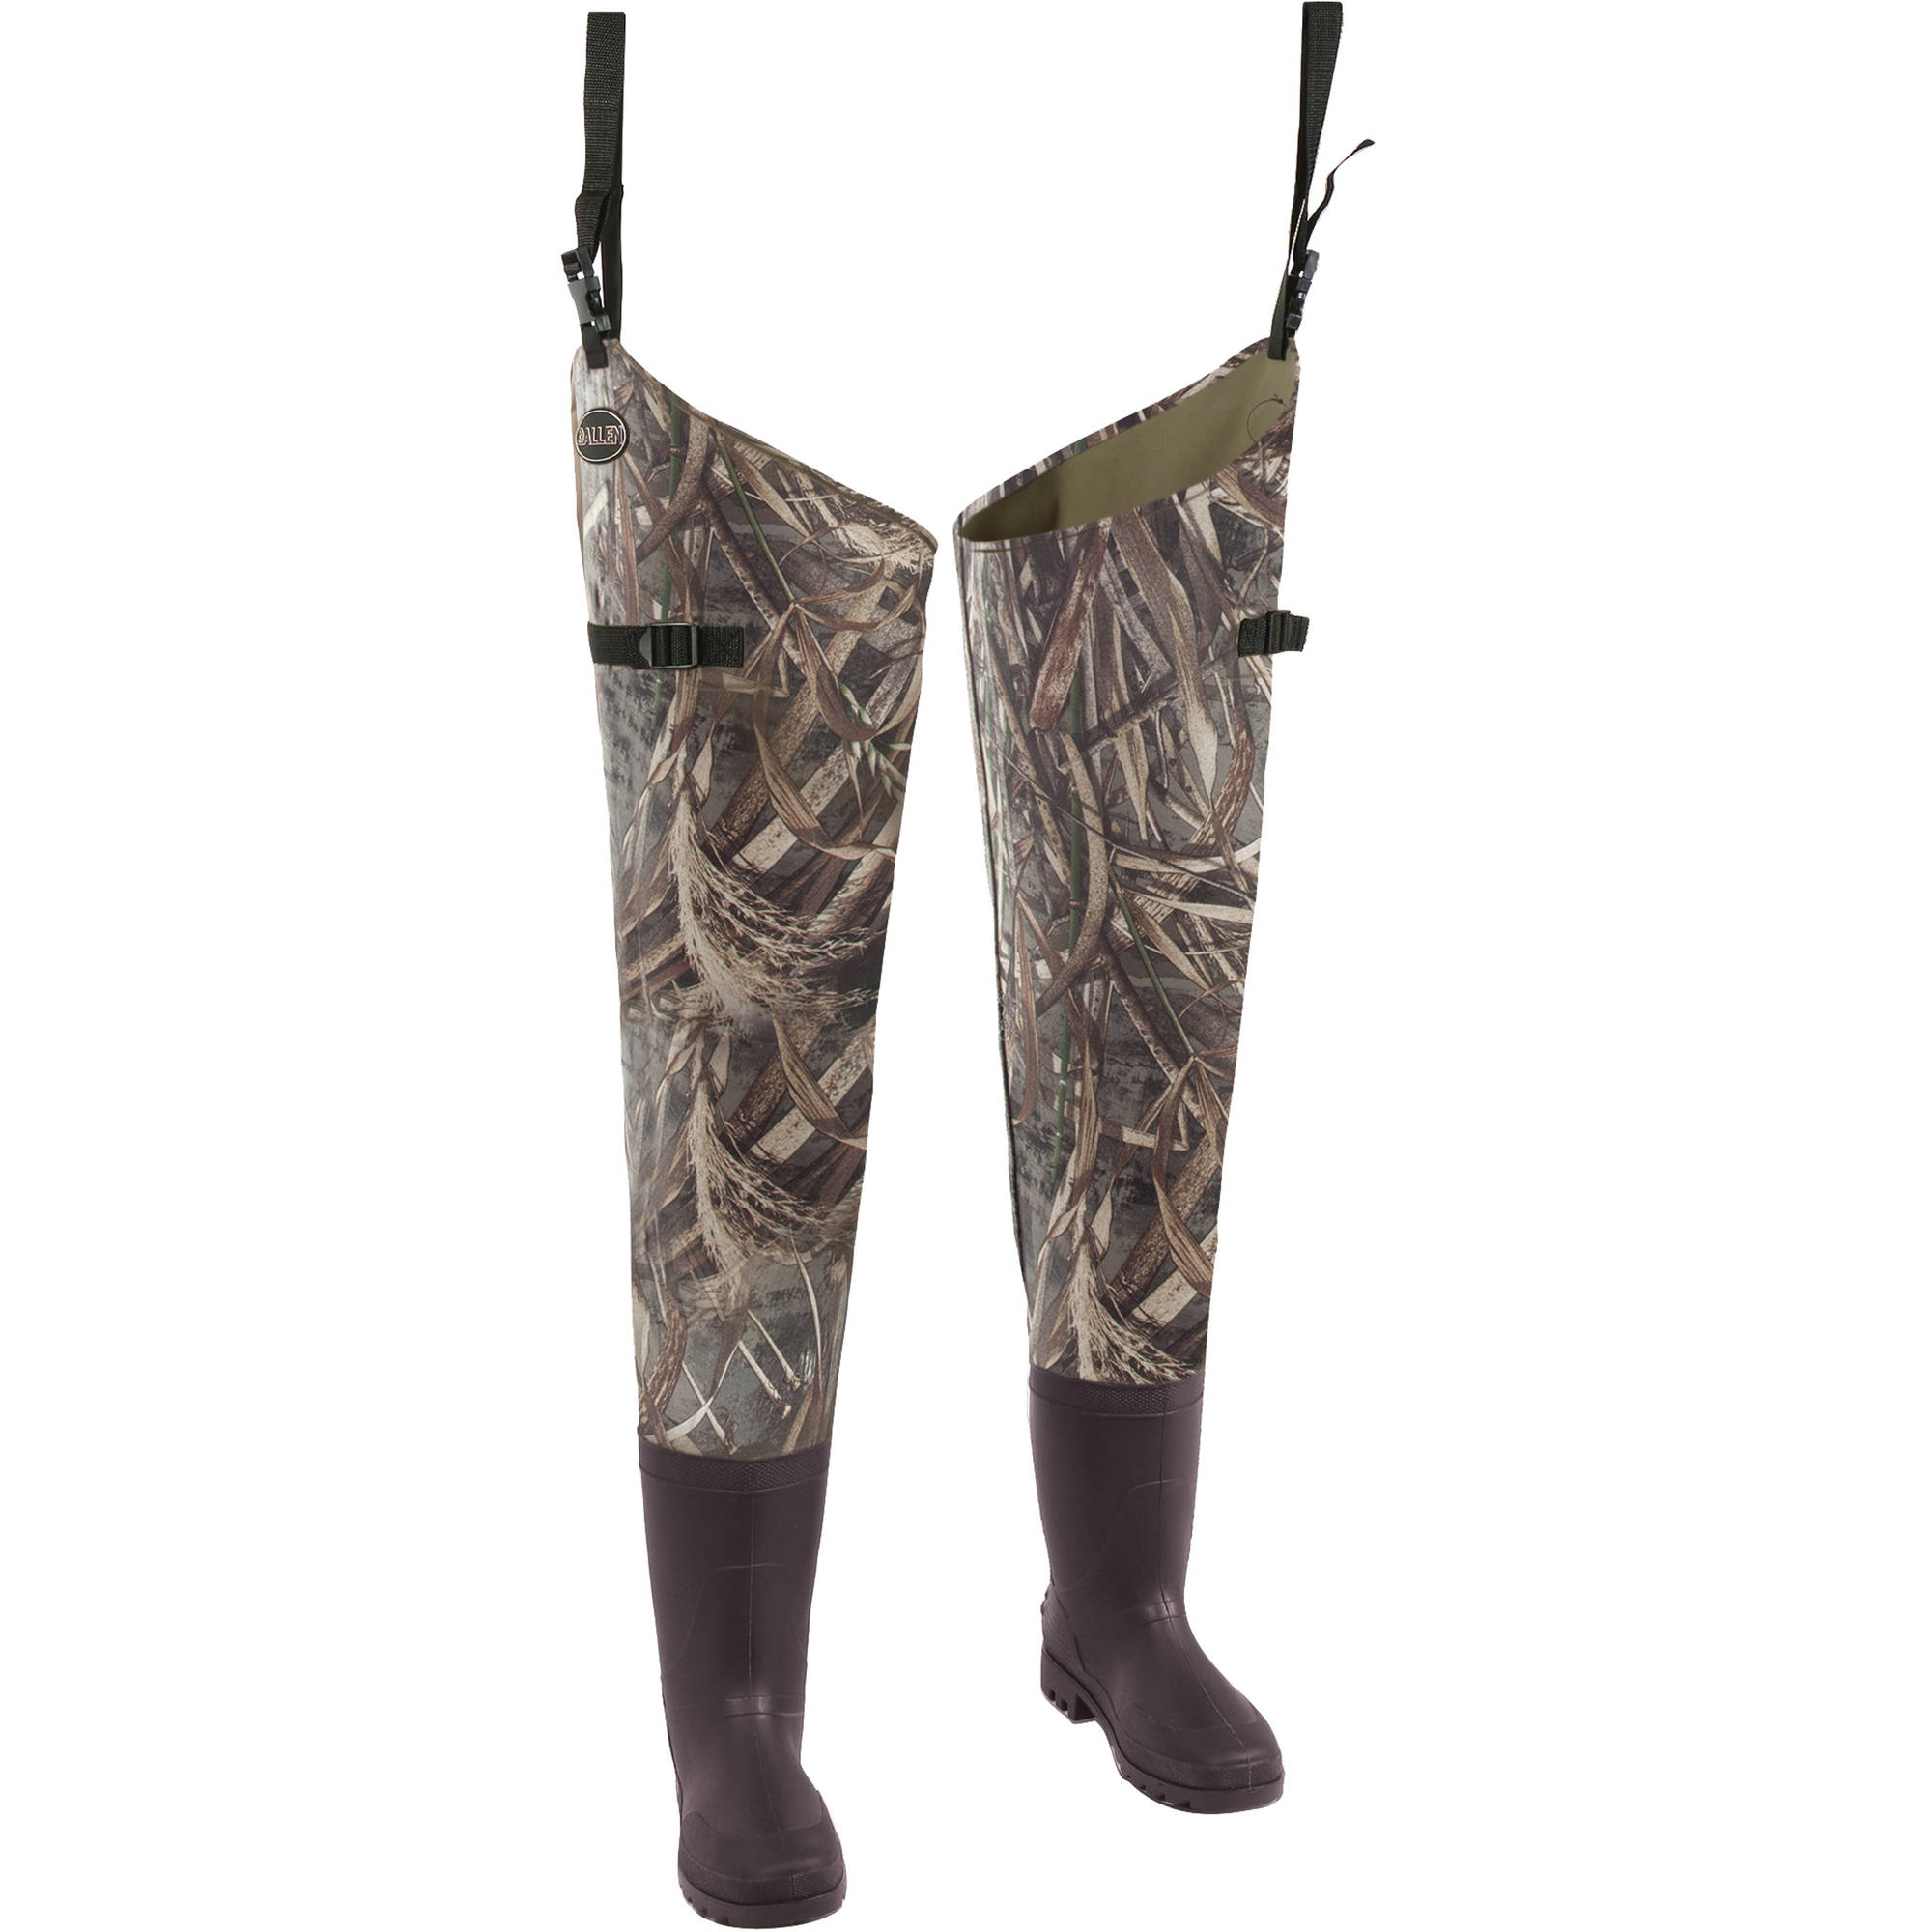 Allen Cases Dillon 2-Ply Camo Hip Wader, Realtree Max5 by Allen Cases